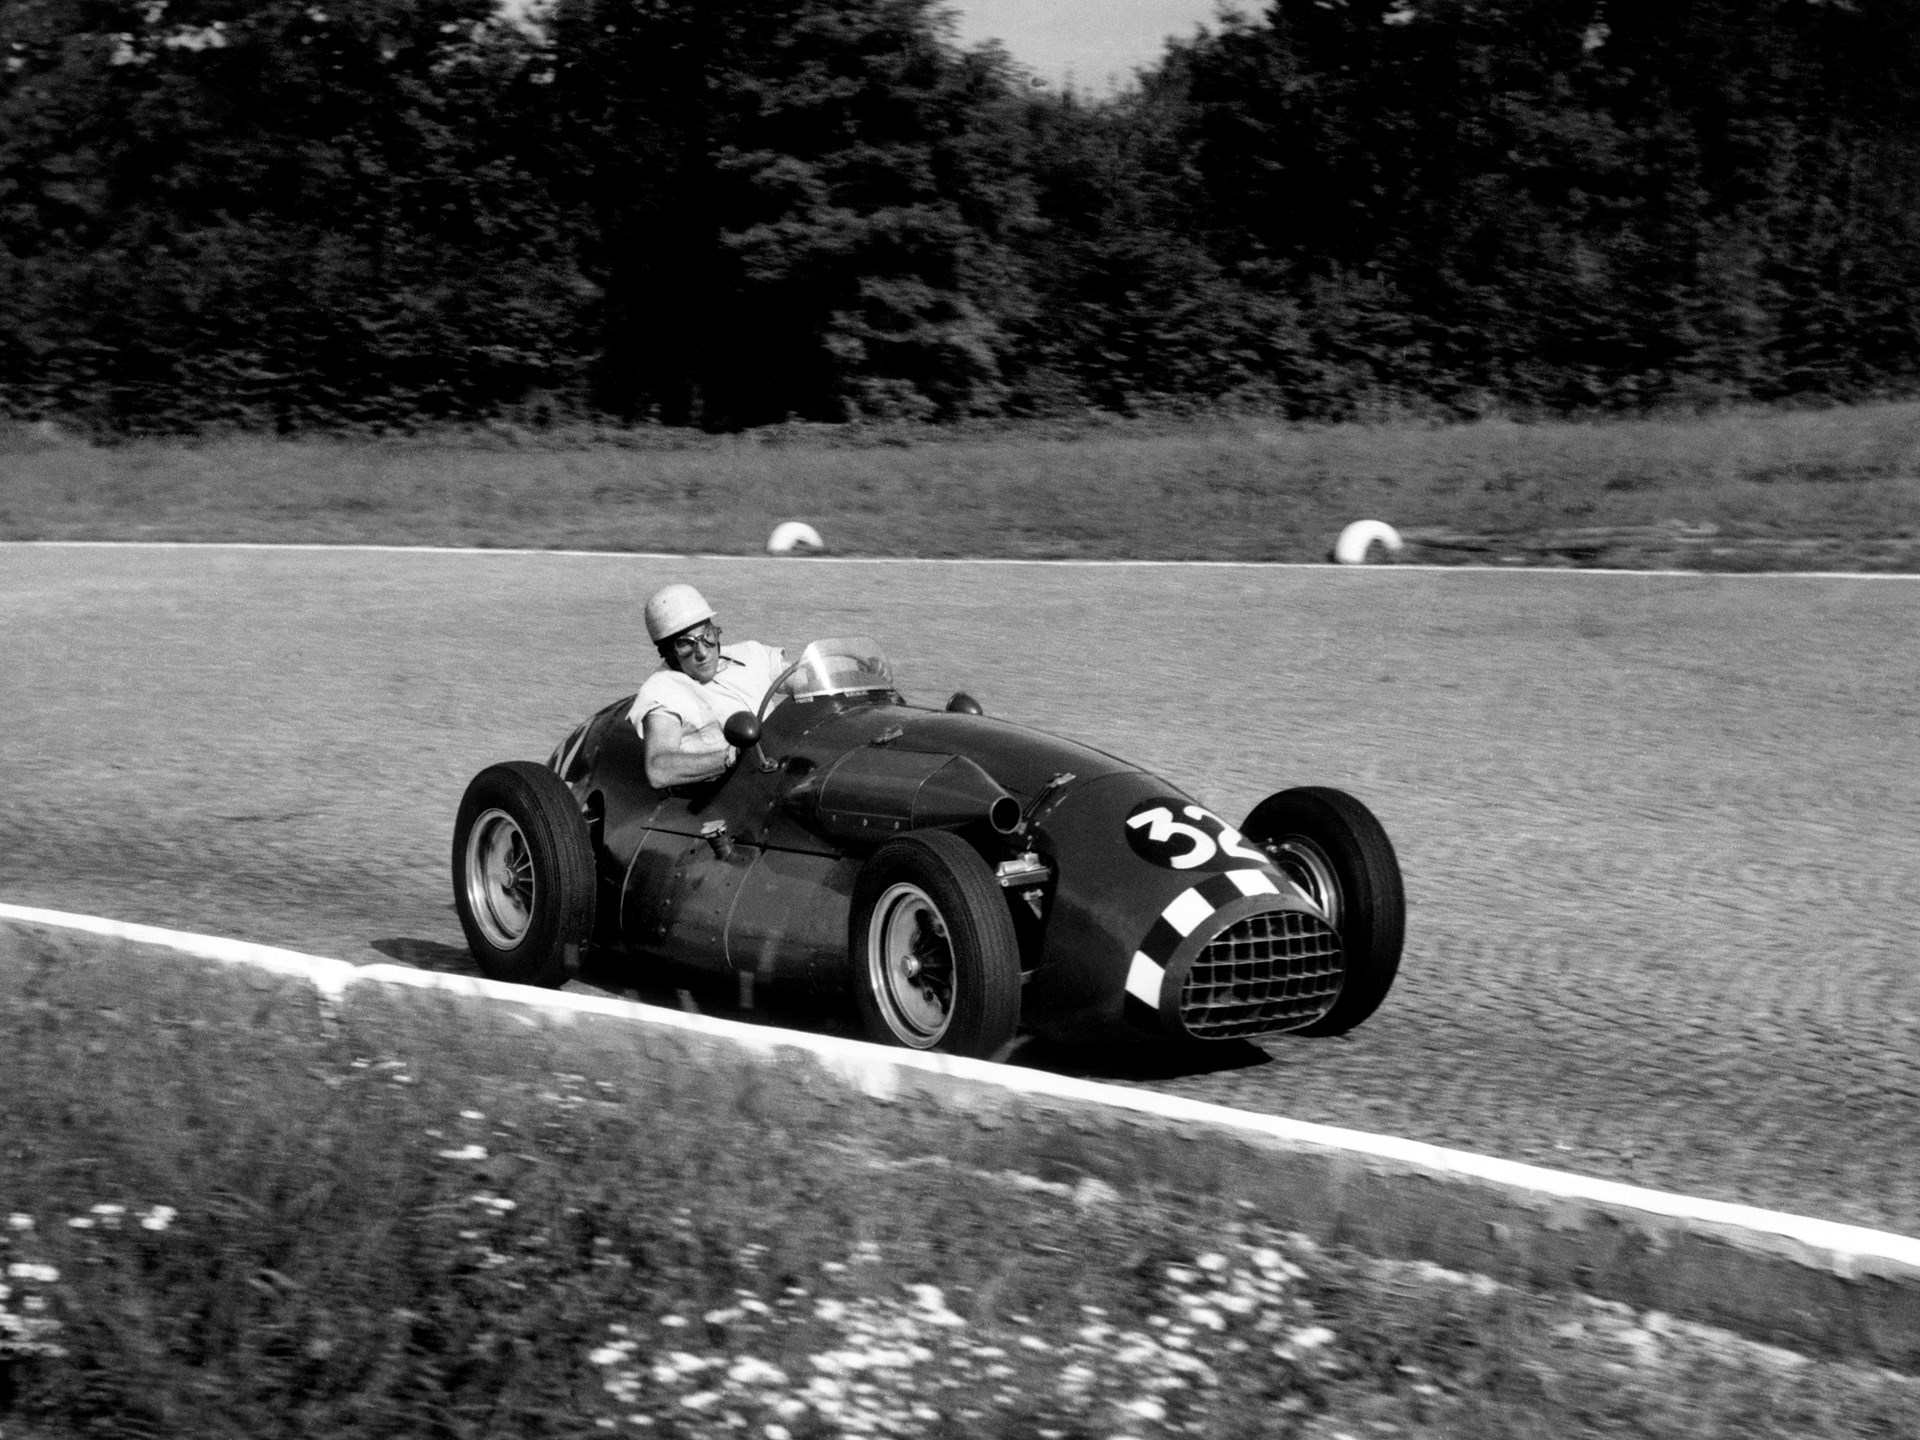 Stirling Moss behind the wheel of the Connaught at the 1952 Italian Grand Prix at Monza.